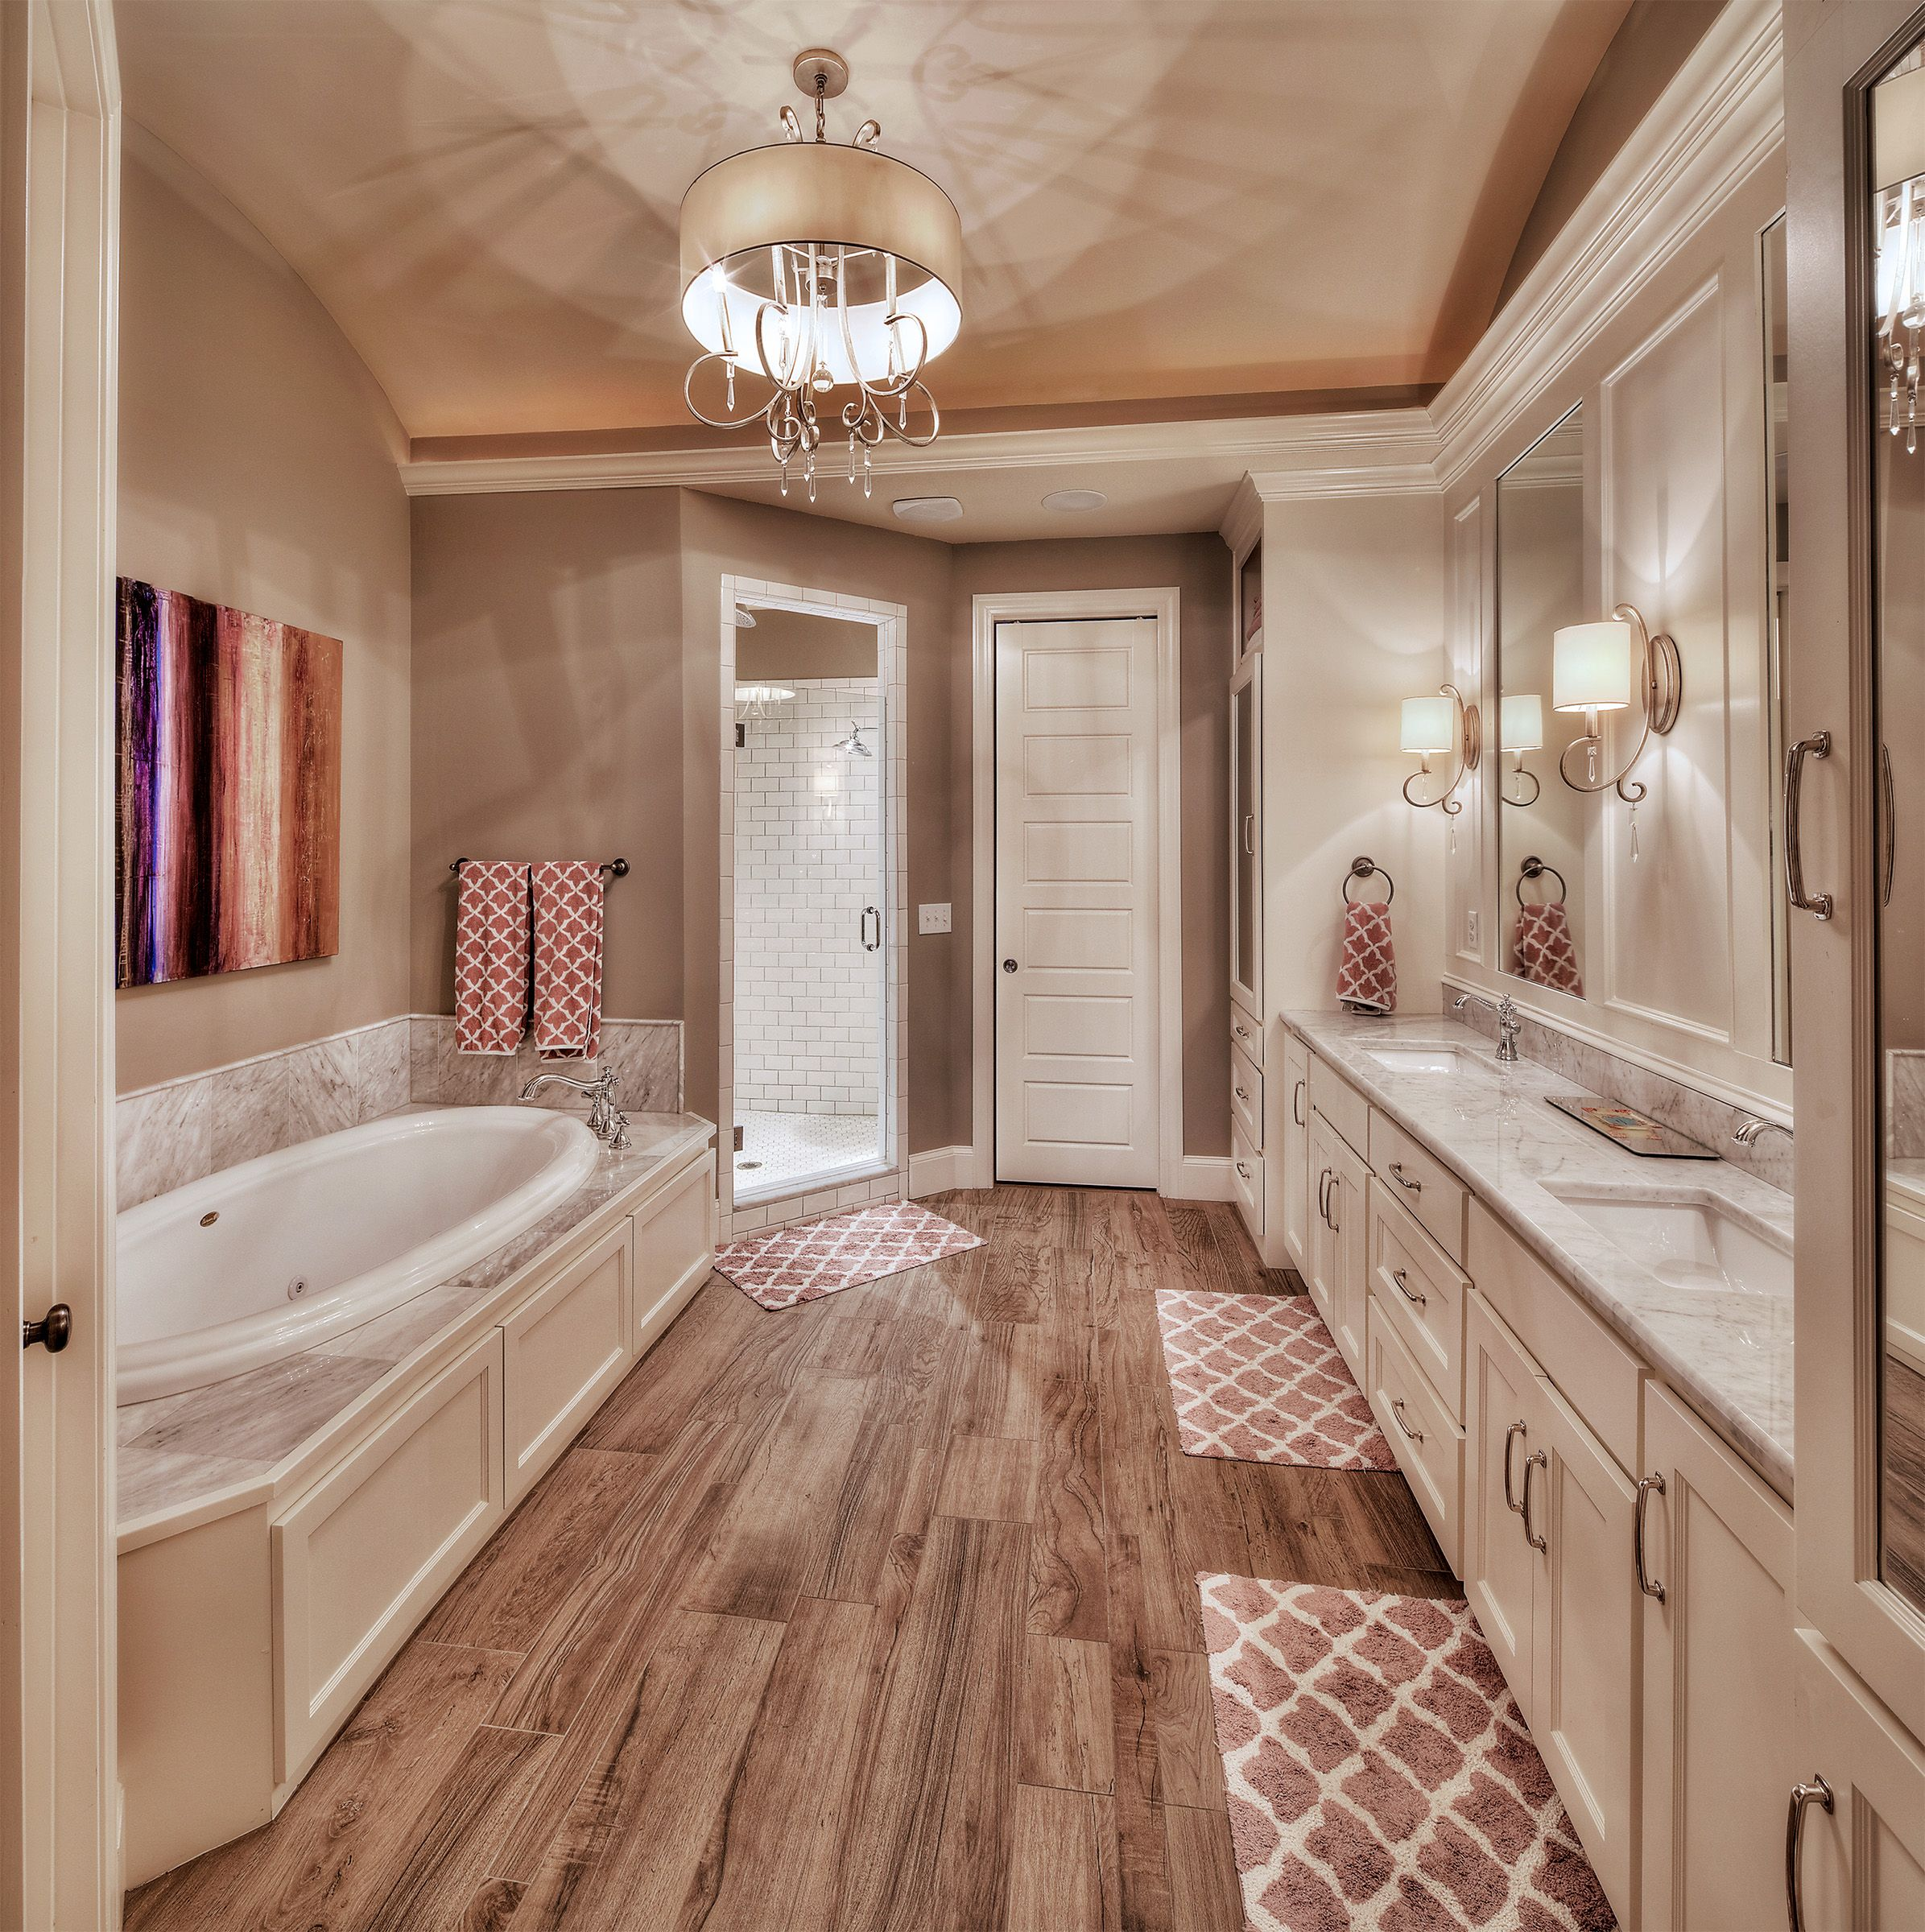 Master Bathroom Hardwood Floors Large Tub His And Her Sink Home Pinterest Large Tub